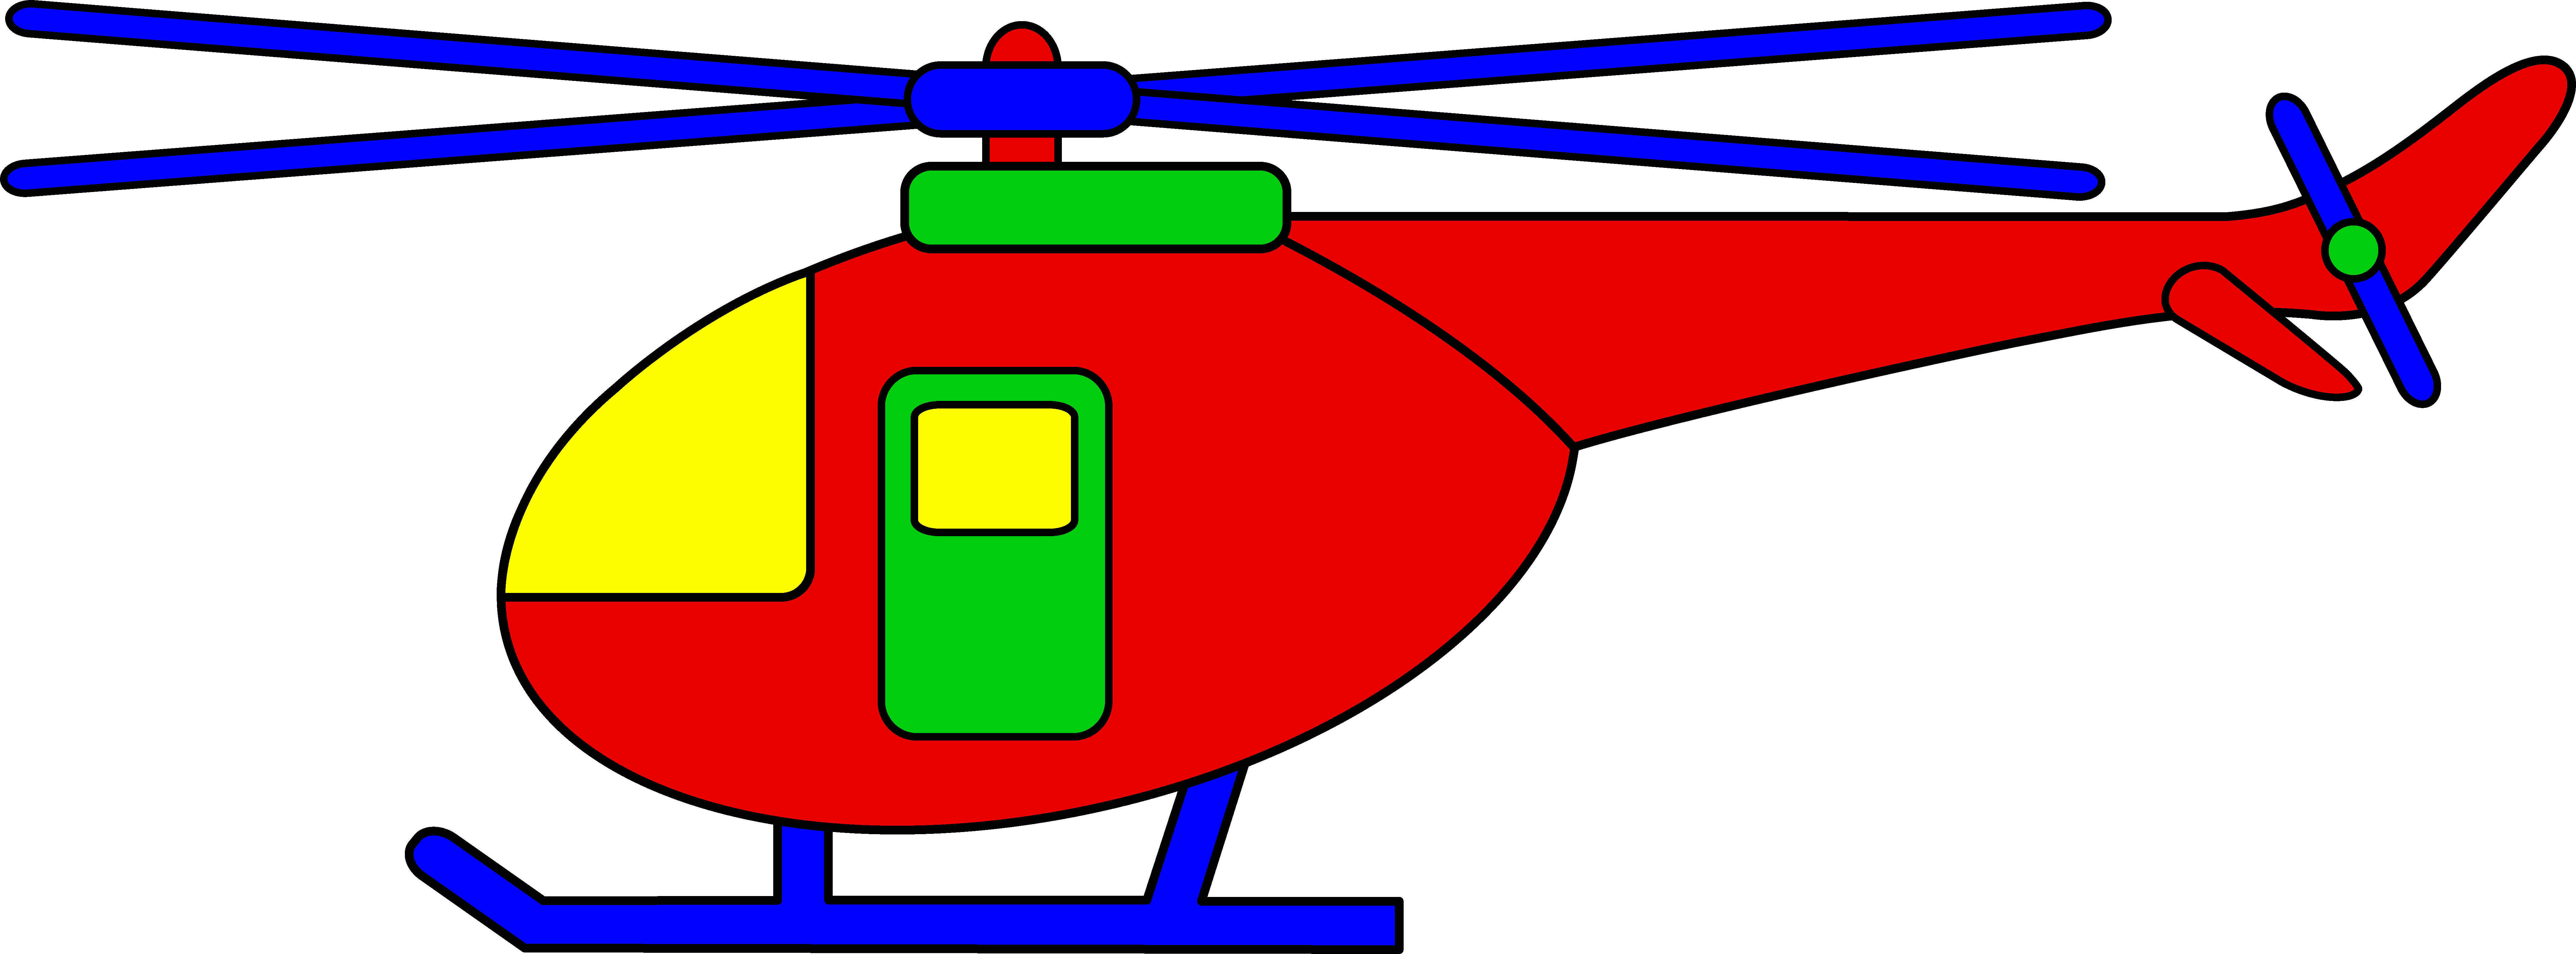 Drawing helicopters kid. Helicopter clipart panda free